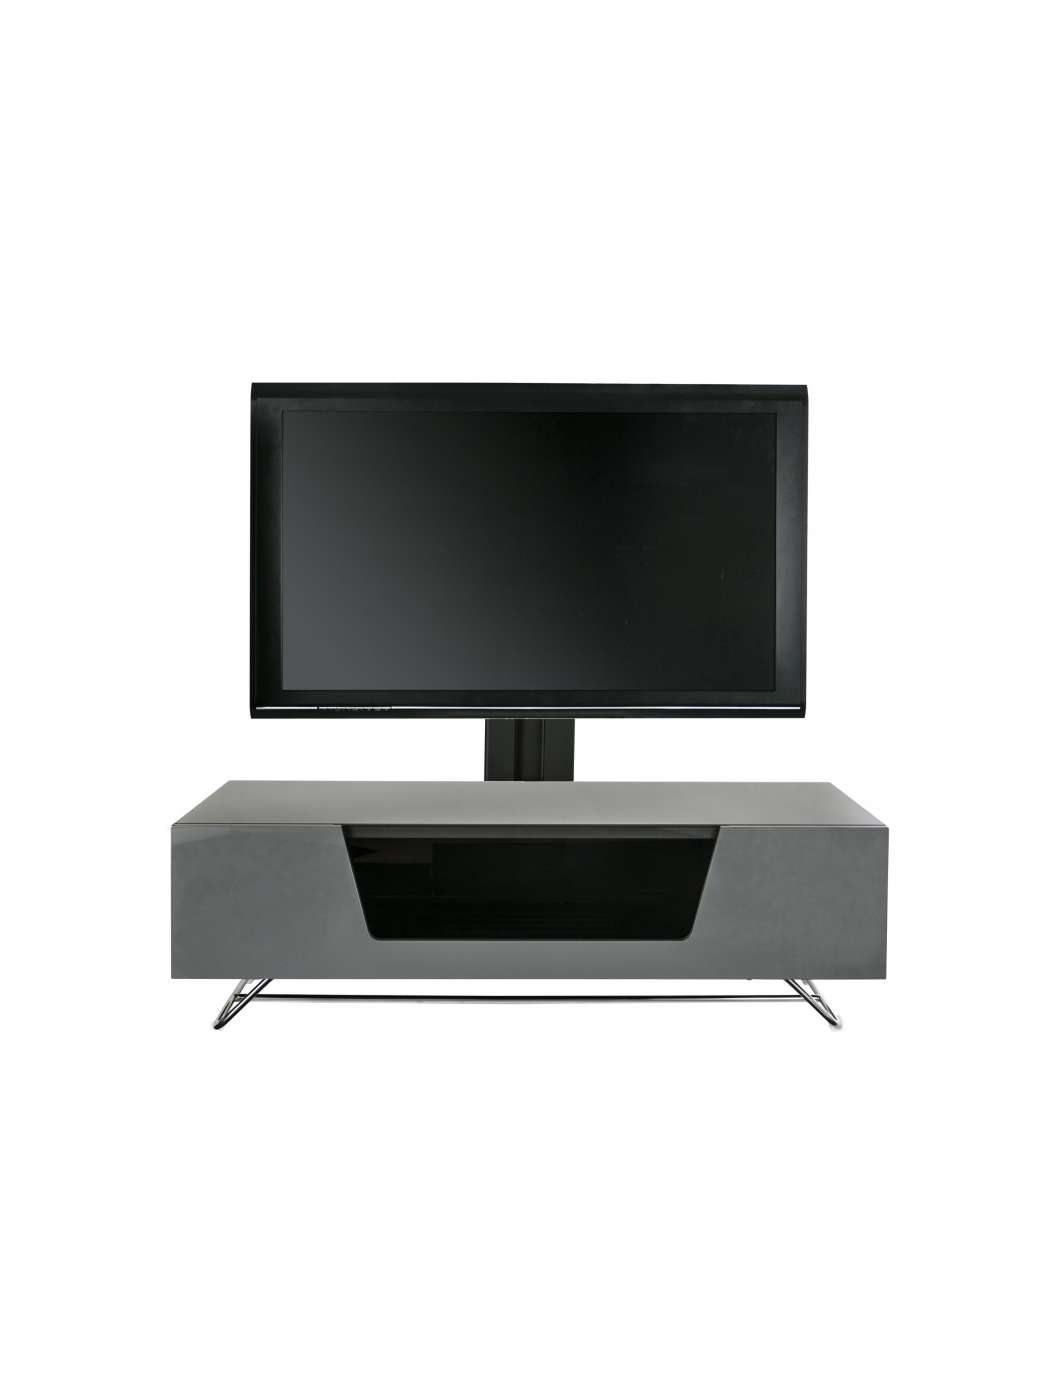 Alphason Chromium Tv Stand Cro2 1200Cb Gry | 121 Tv Mounts Intended For Alphason Tv Cabinets (View 8 of 20)